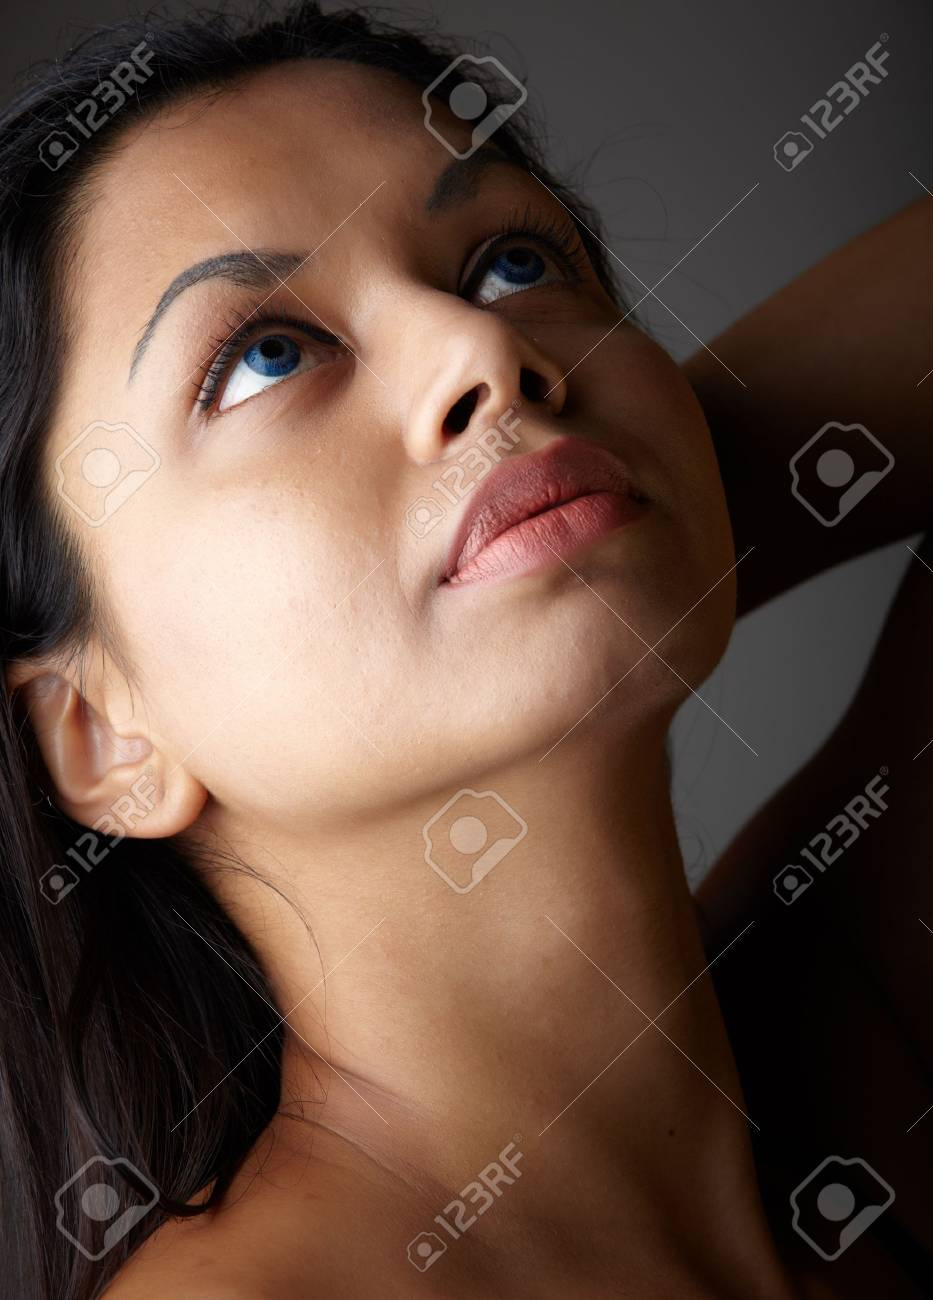 Young voluptuous Indian adult woman with long black hair wearing black lingerie and blue coloured contact lenses on a neutral grey background. Mixed ethnicity Stock Photo - 9048858